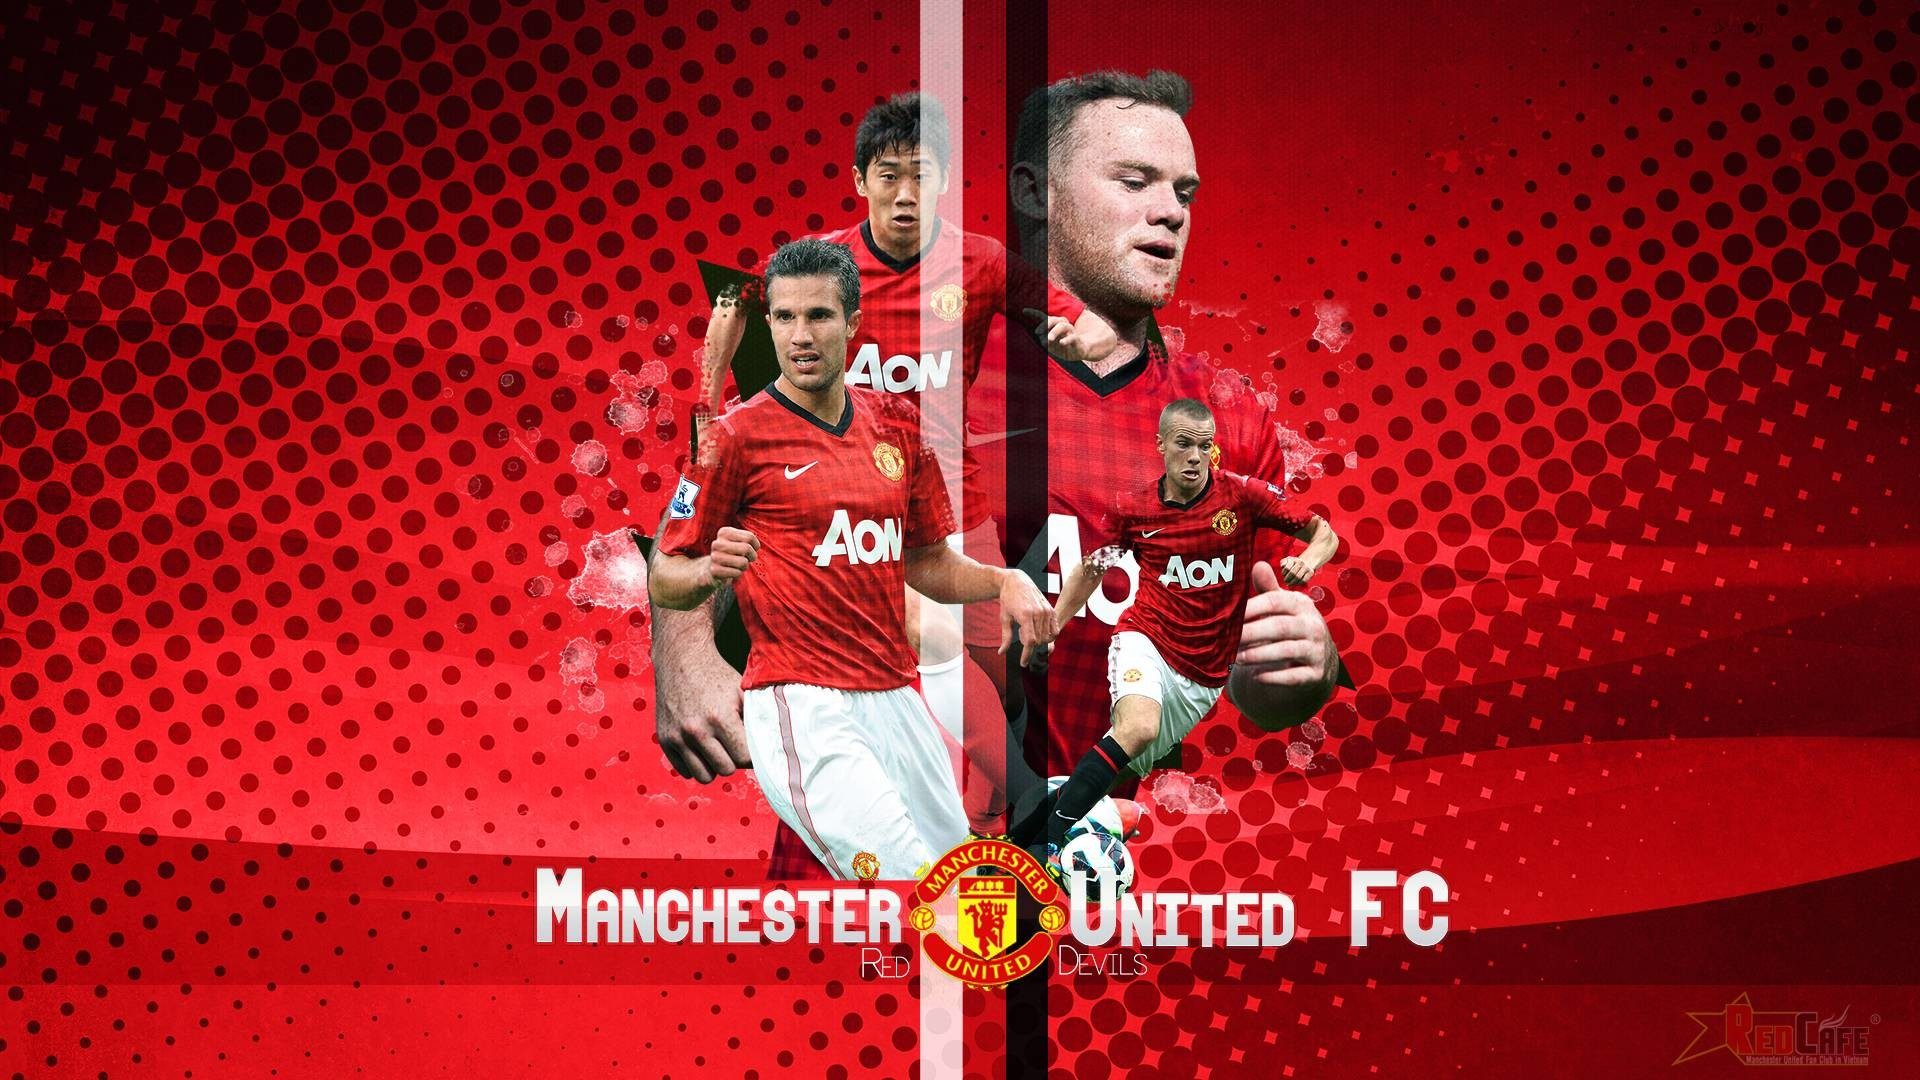 1920x1080 Manchester United Wallpaper For Android | Manuwallhd.com